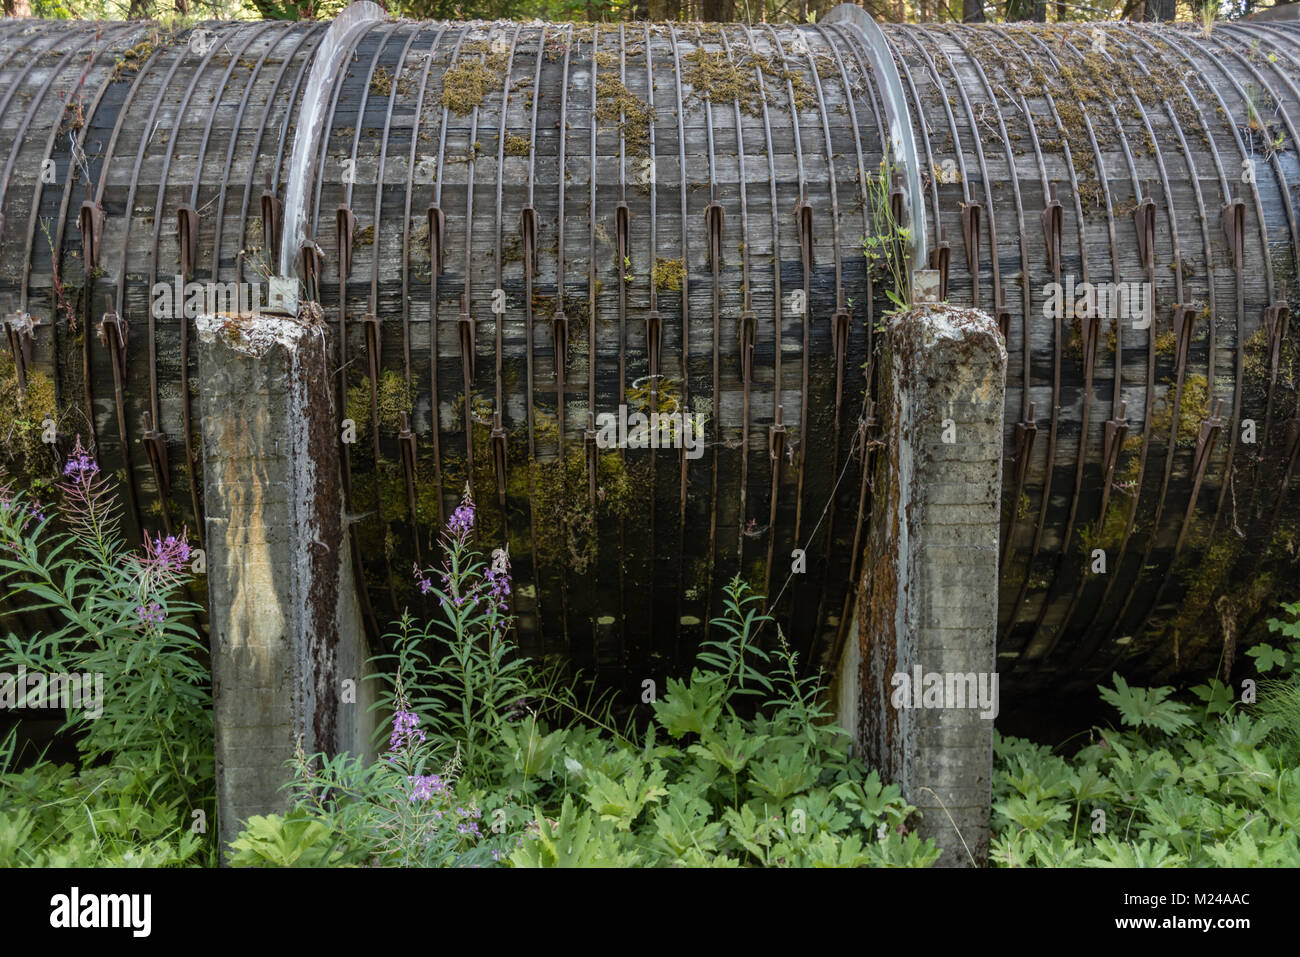 Wood Stave Pipe at Toketee Falls transports water - Stock Image